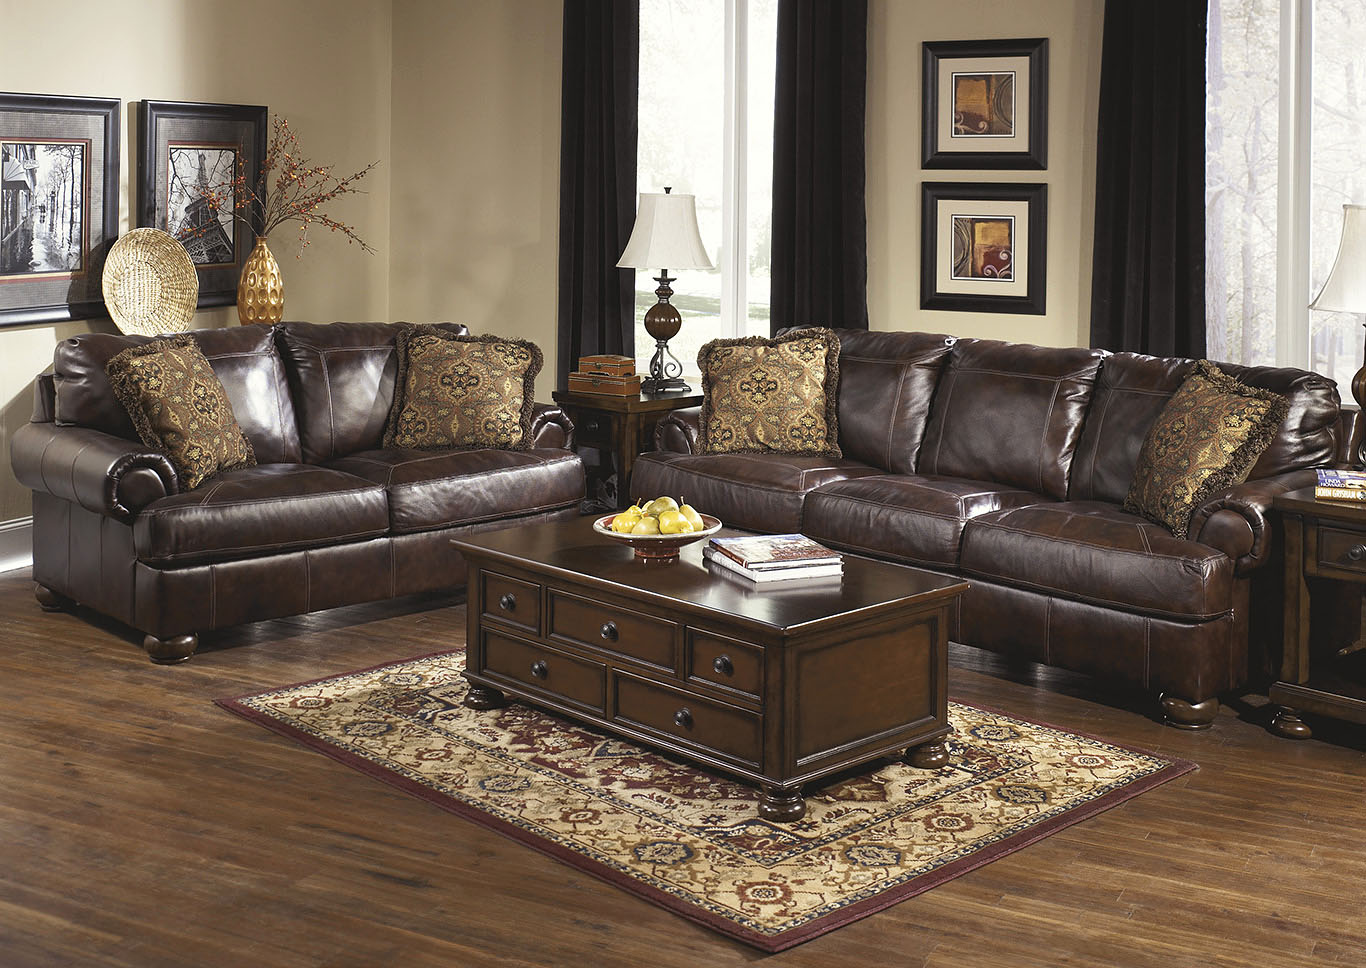 Axiom Walnut Sofa & Loveseat,Signature Design By Ashley